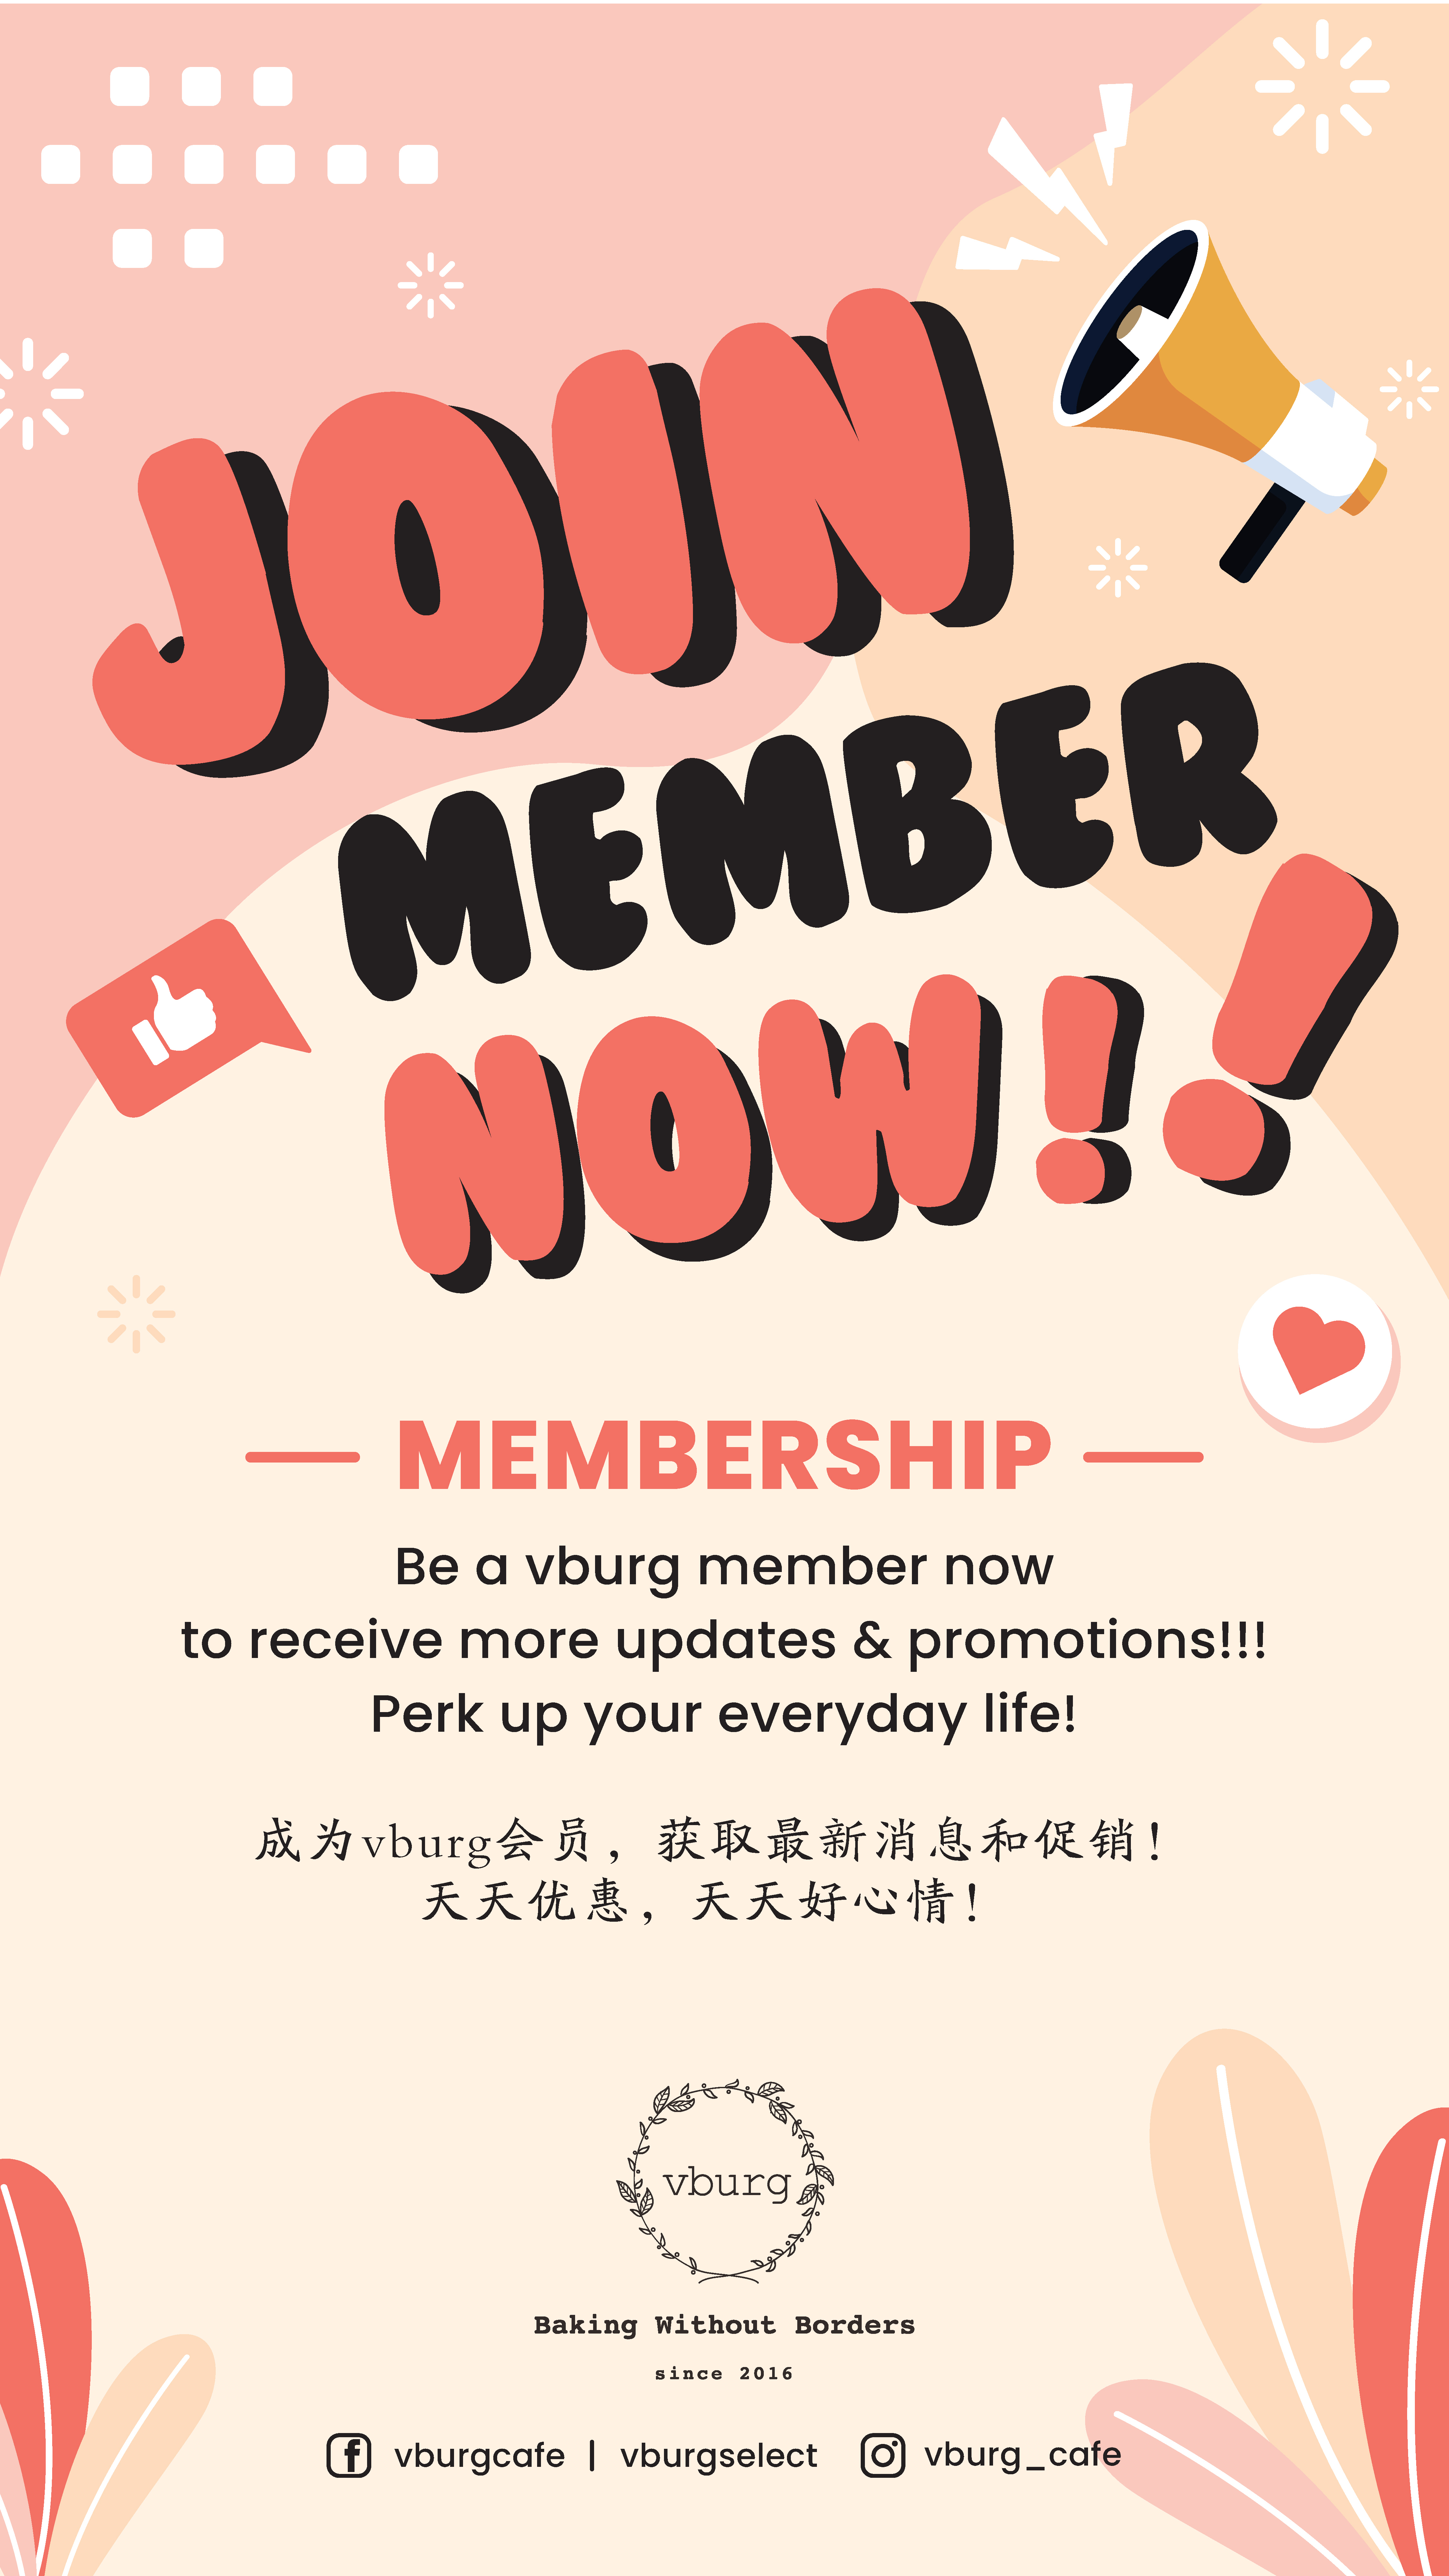 Join member now